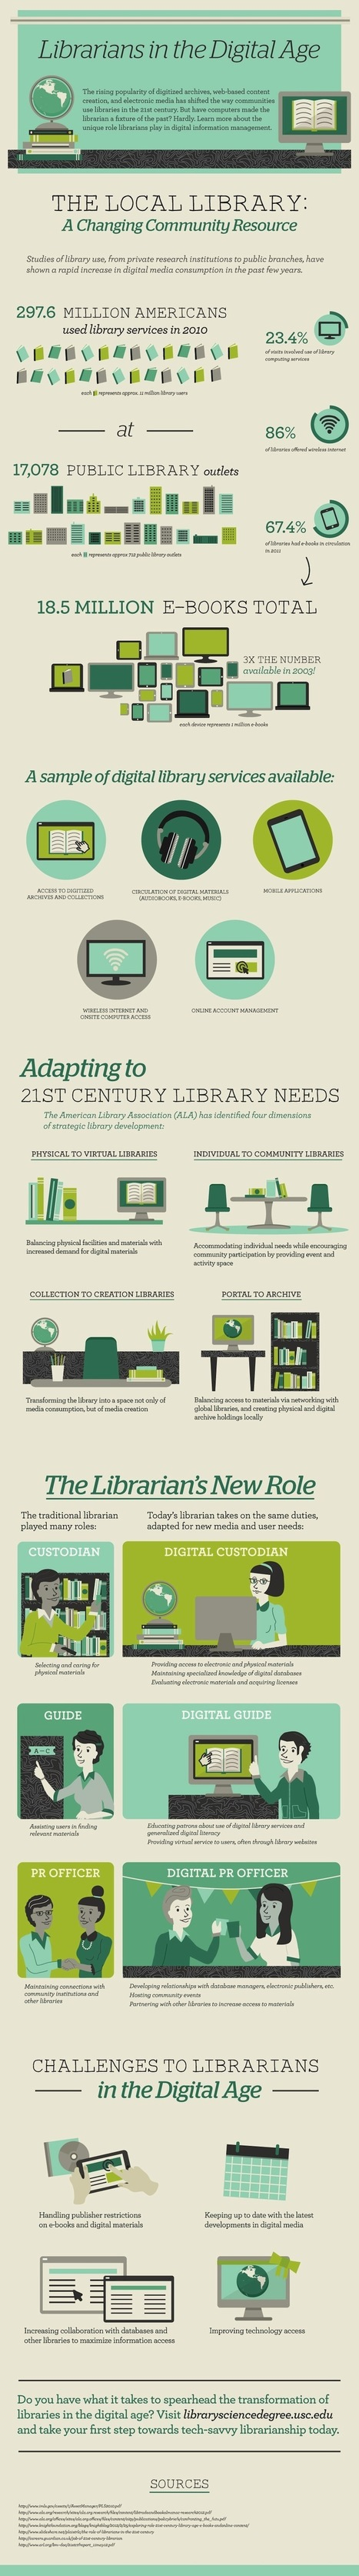 In digital age, librarians are needed more than ever [infographic] | Research Capacity-Building in Africa | Scoop.it